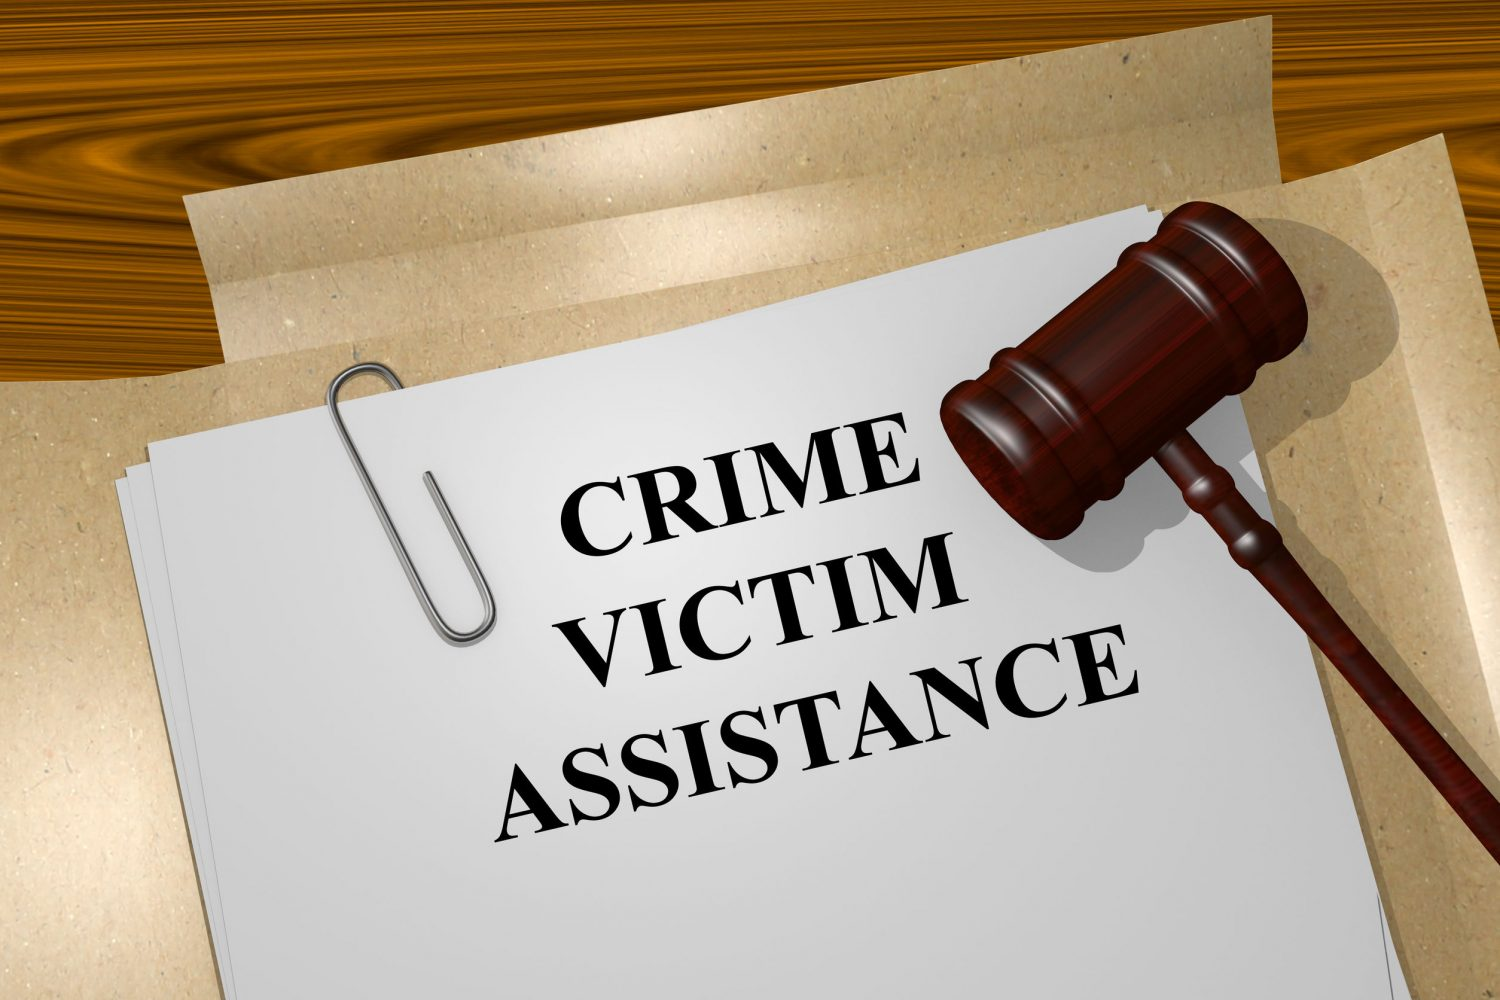 Crime Victim Assistance